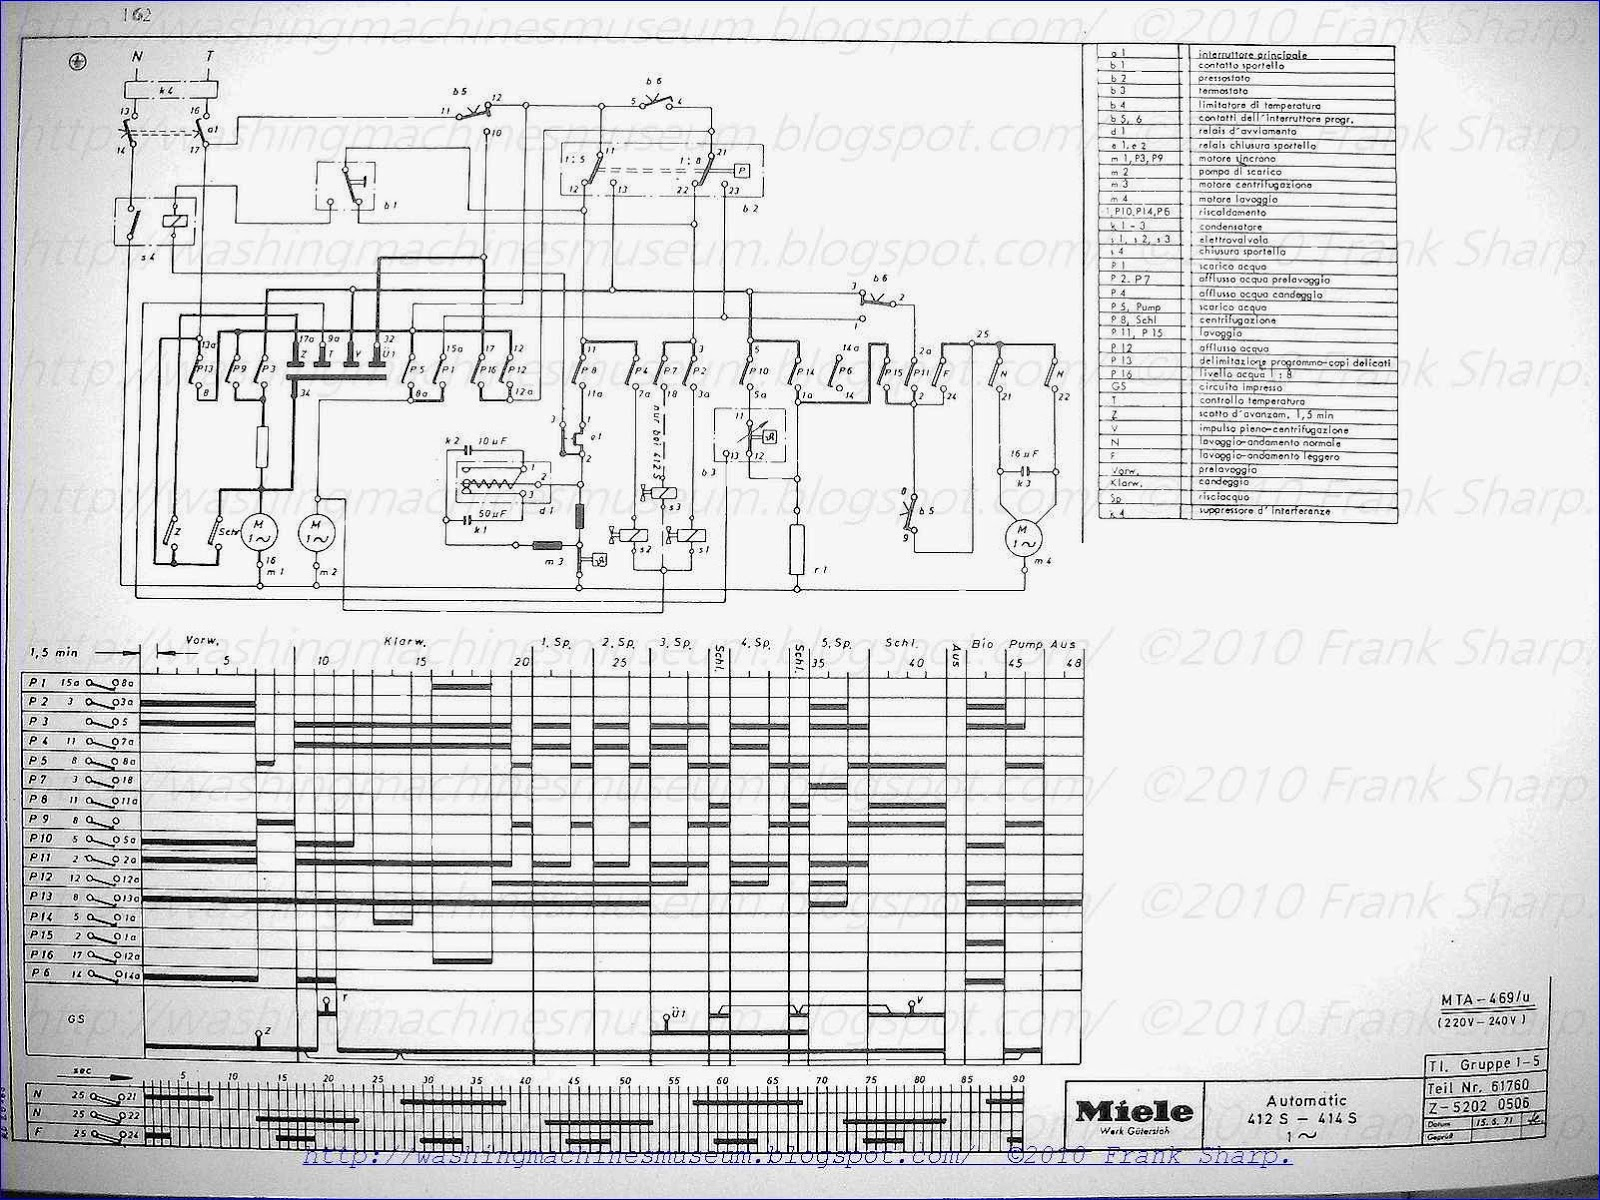 Miele Wiring Diagram Library Maytag Oven 412s 414s Timer Holzer Mta 469u Schematic